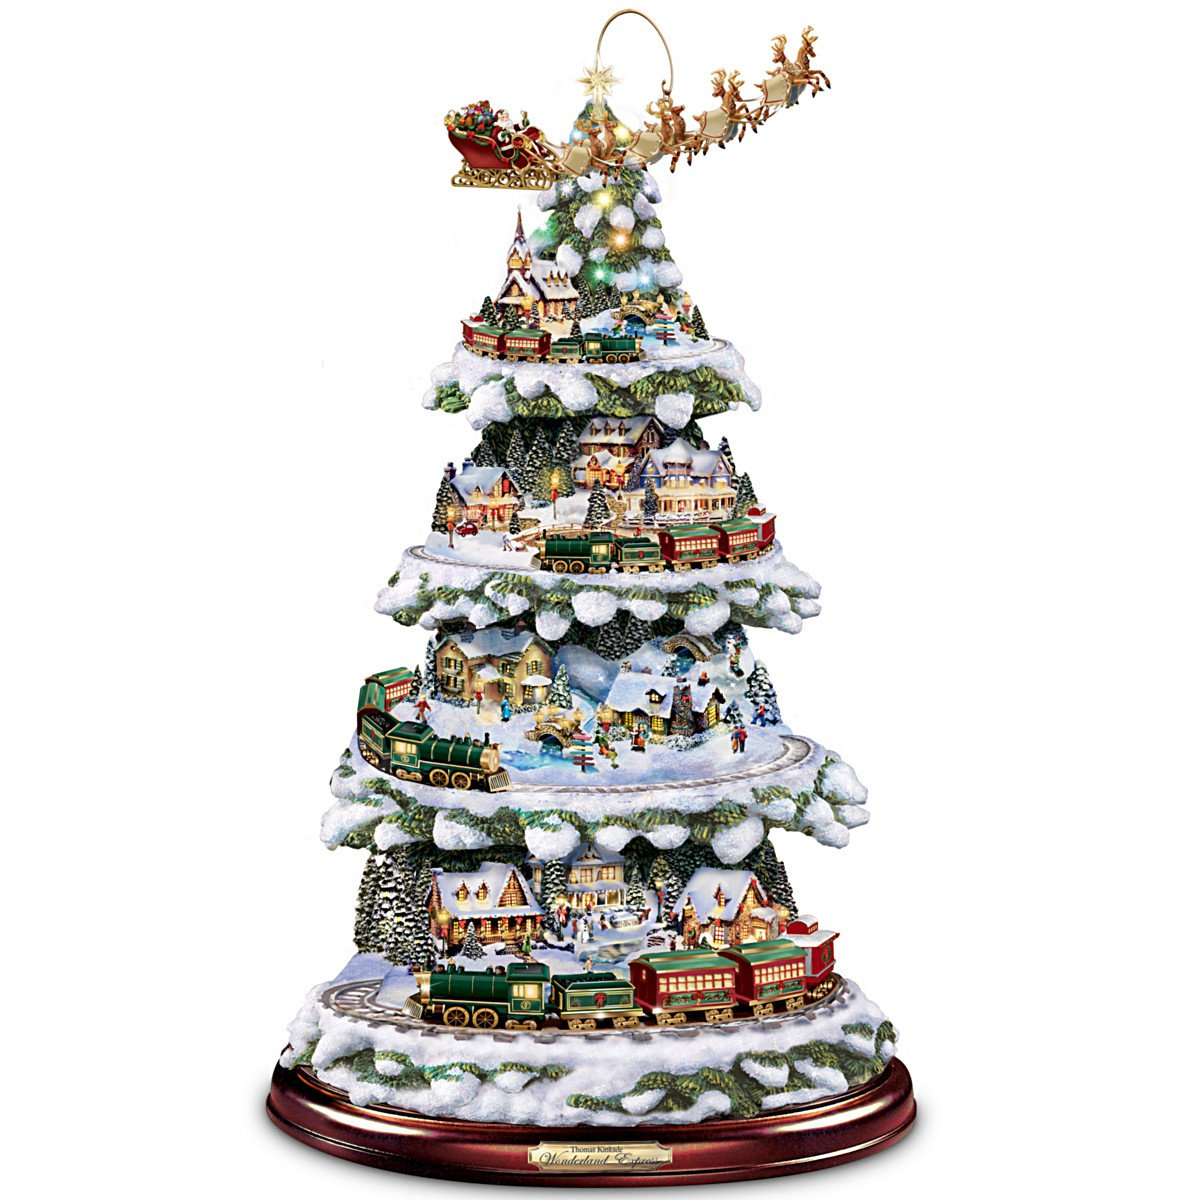 Thomas Kinkade Wonderland Express Animated Tabletop Christmas Tree With Train by Hawthorne Village